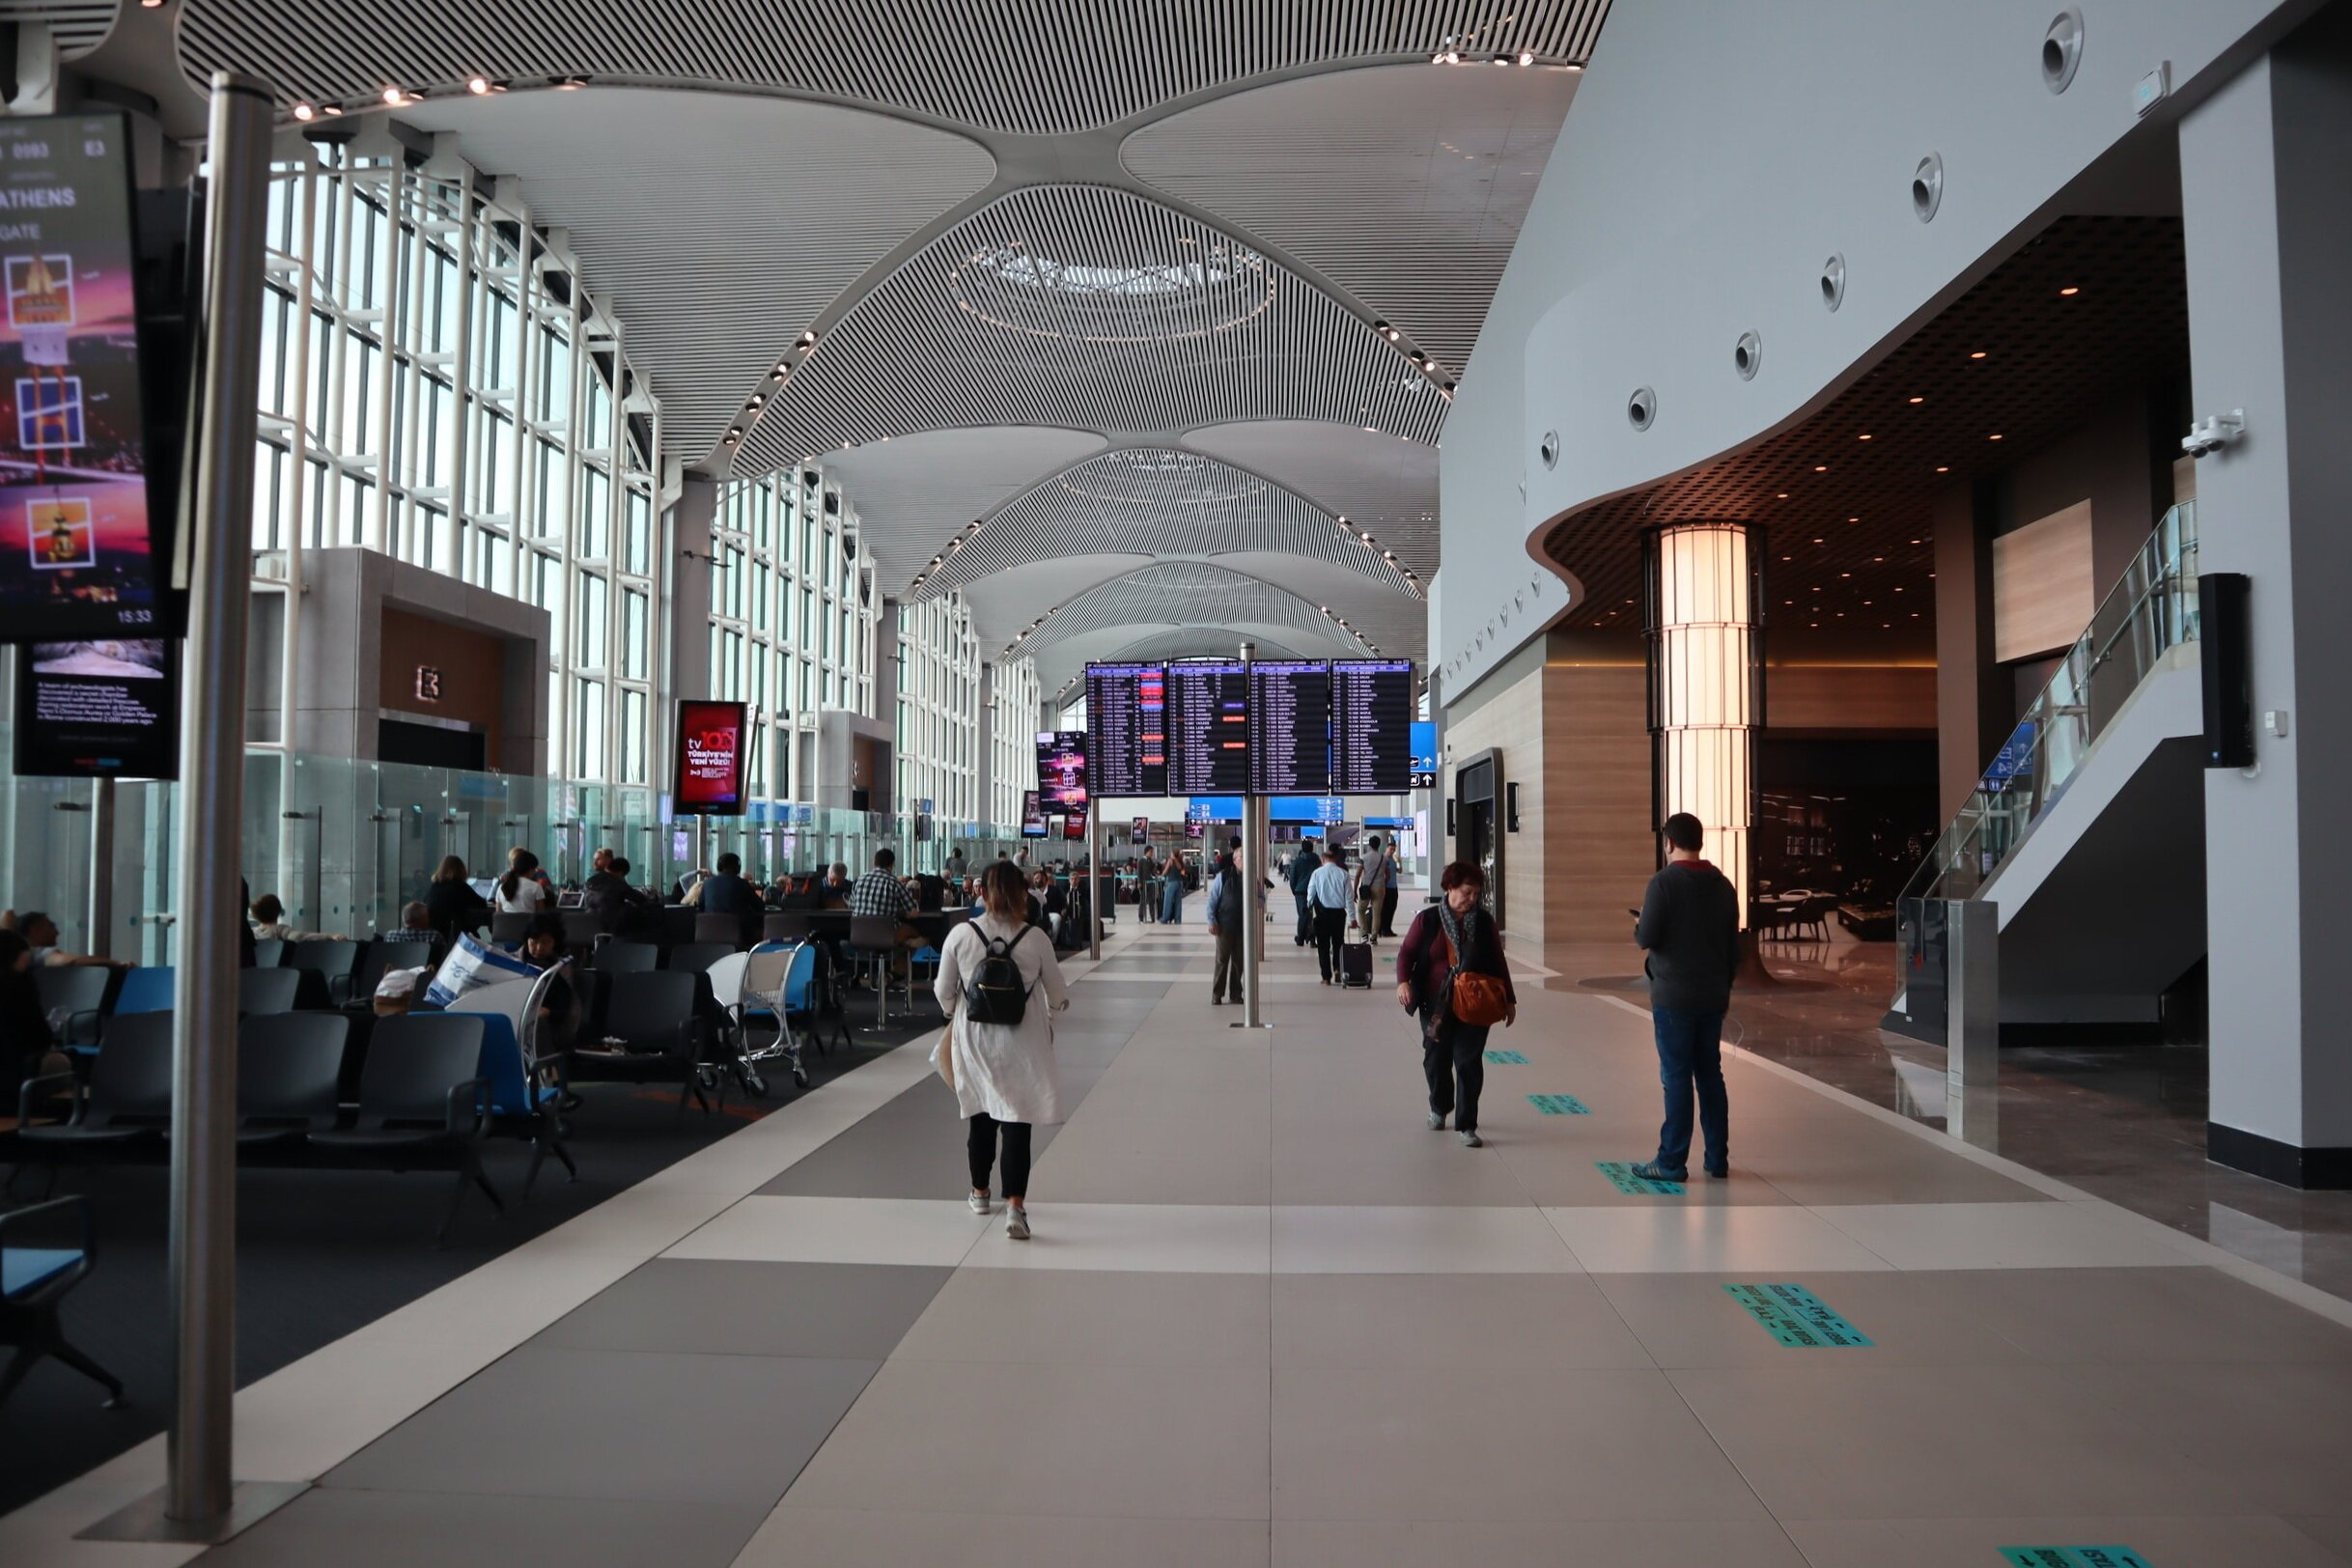 Istanbul New Airport – Departures hall